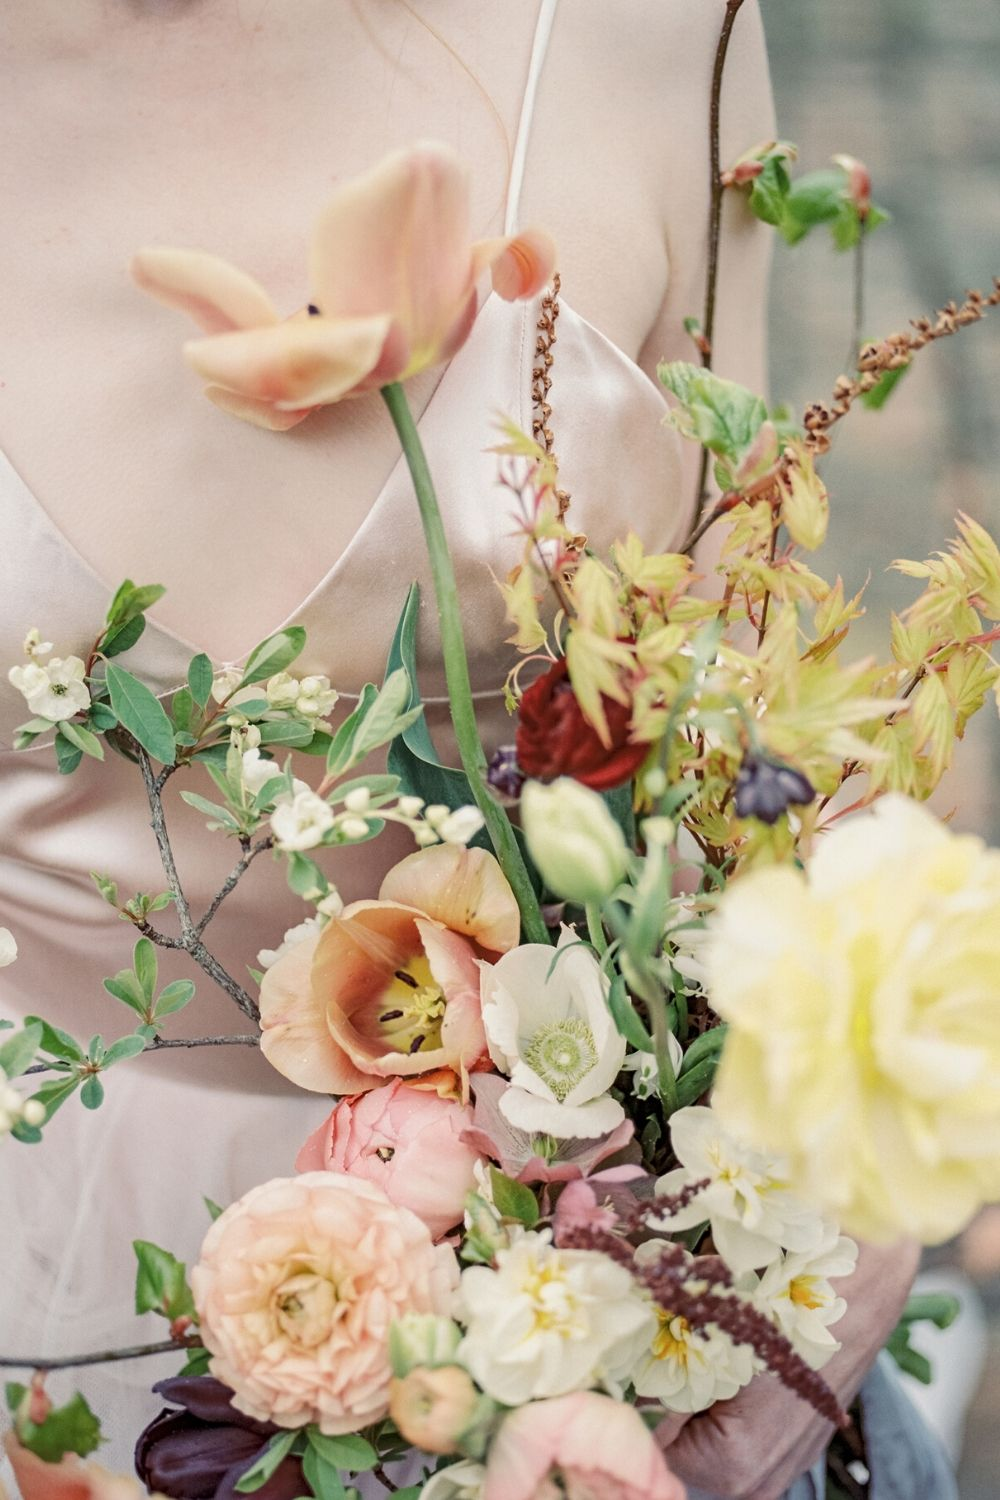 Fine art bridal bouquet with a mixture of natural flowers and leaves